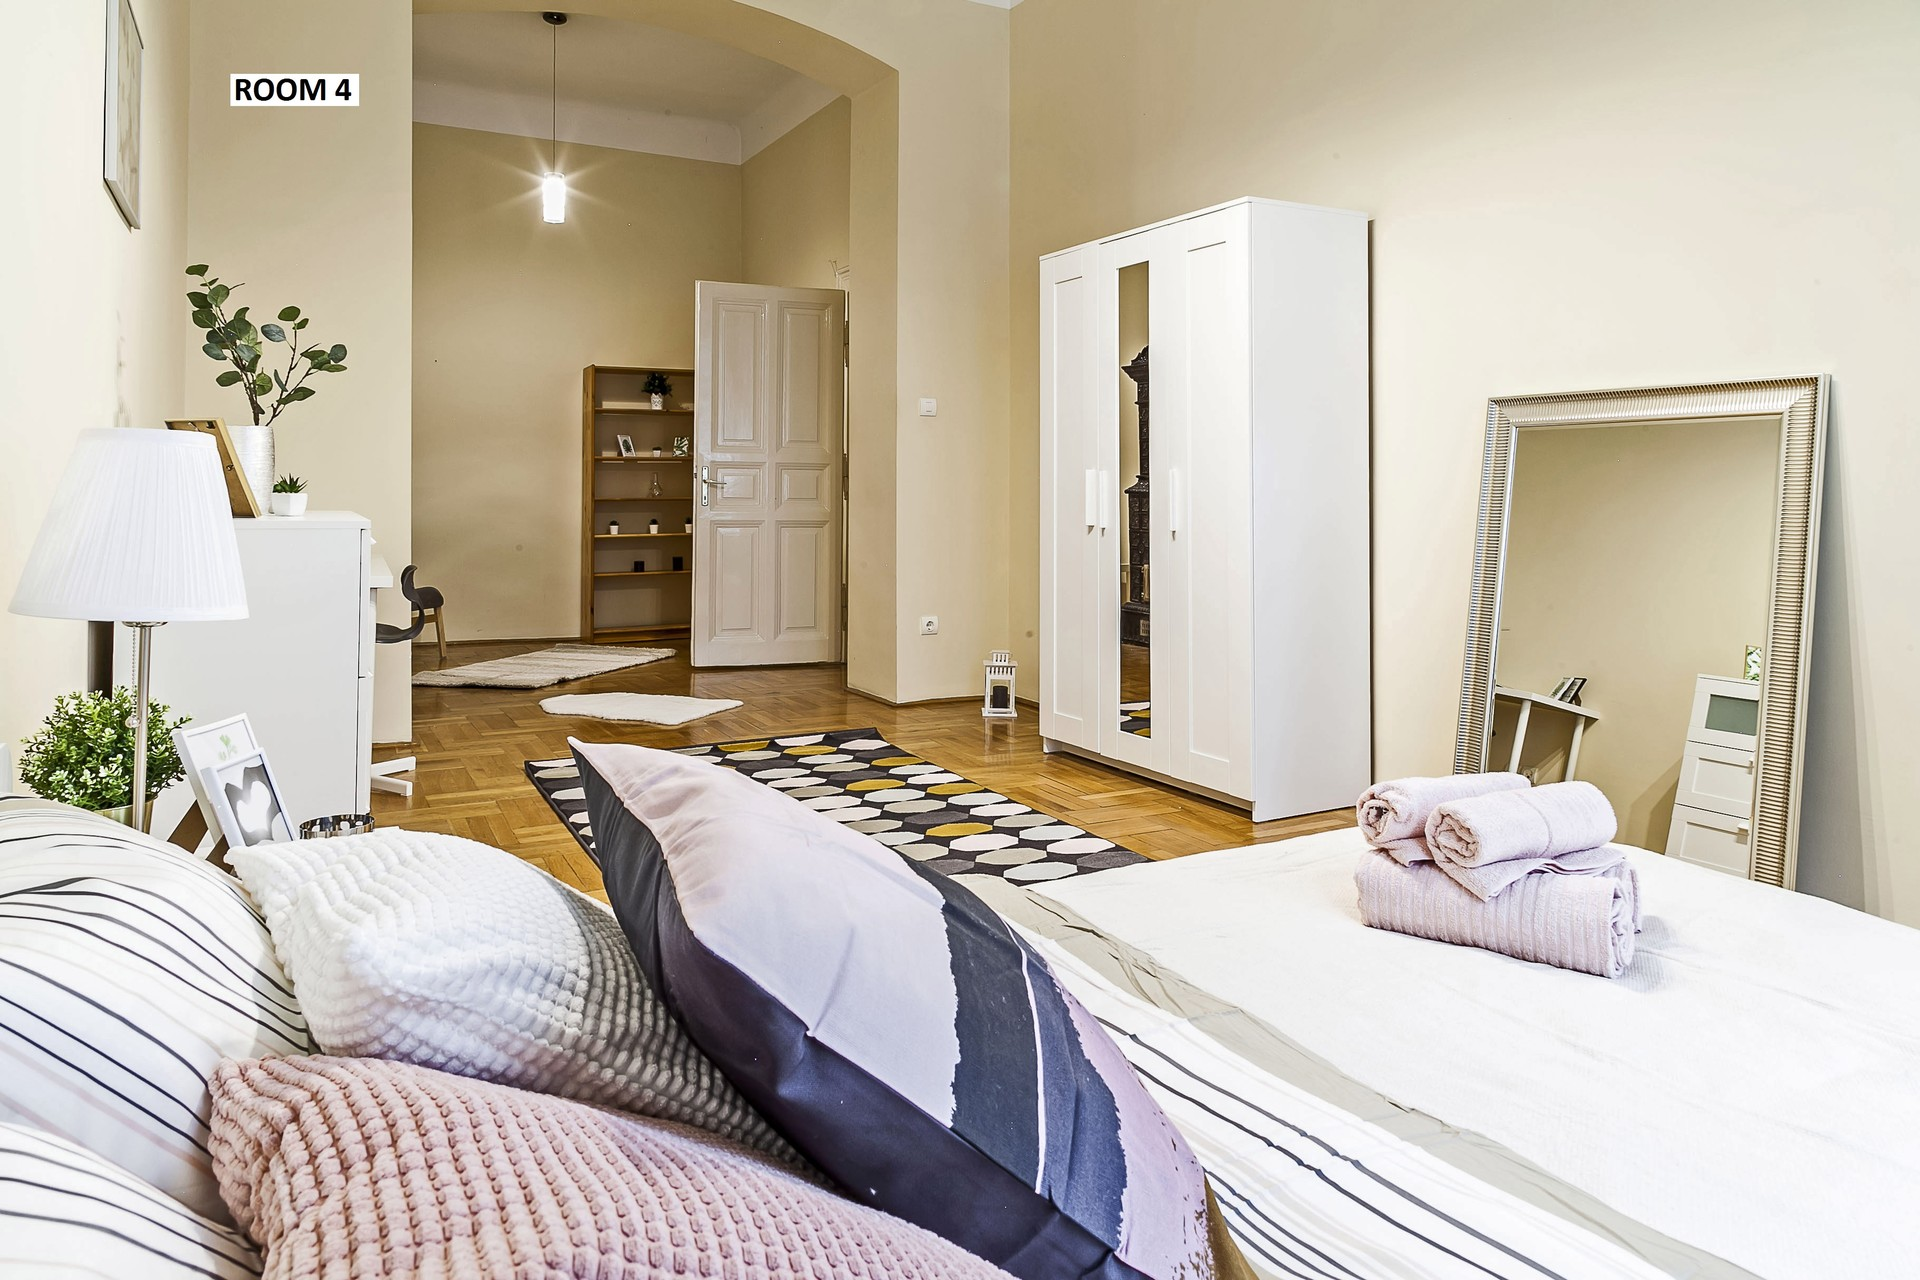 ALL INCLUSIVE 330 EUR ROOM FOR SUMMER at Astoria, close to ELTE,